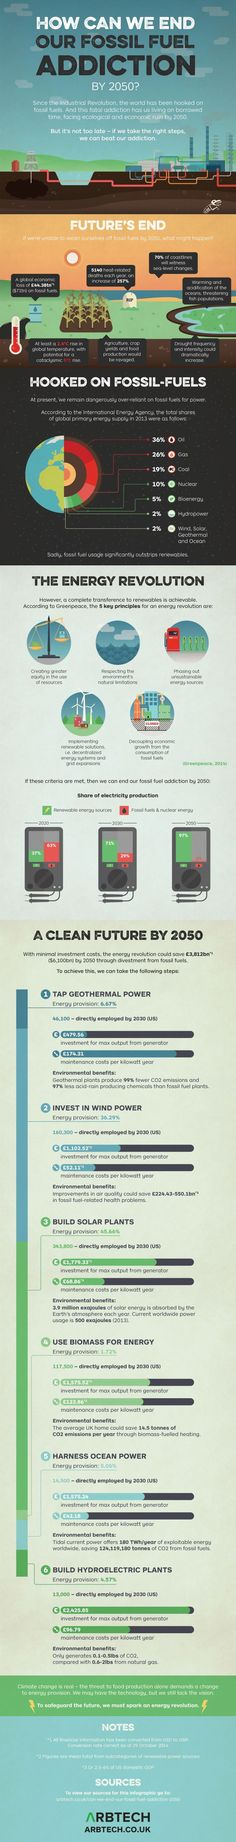 INFOGRAPHIC: Ending our fossil fuel addiction by 2050 | Inhabitat - Green Design, Innovation, Architecture, Green Building